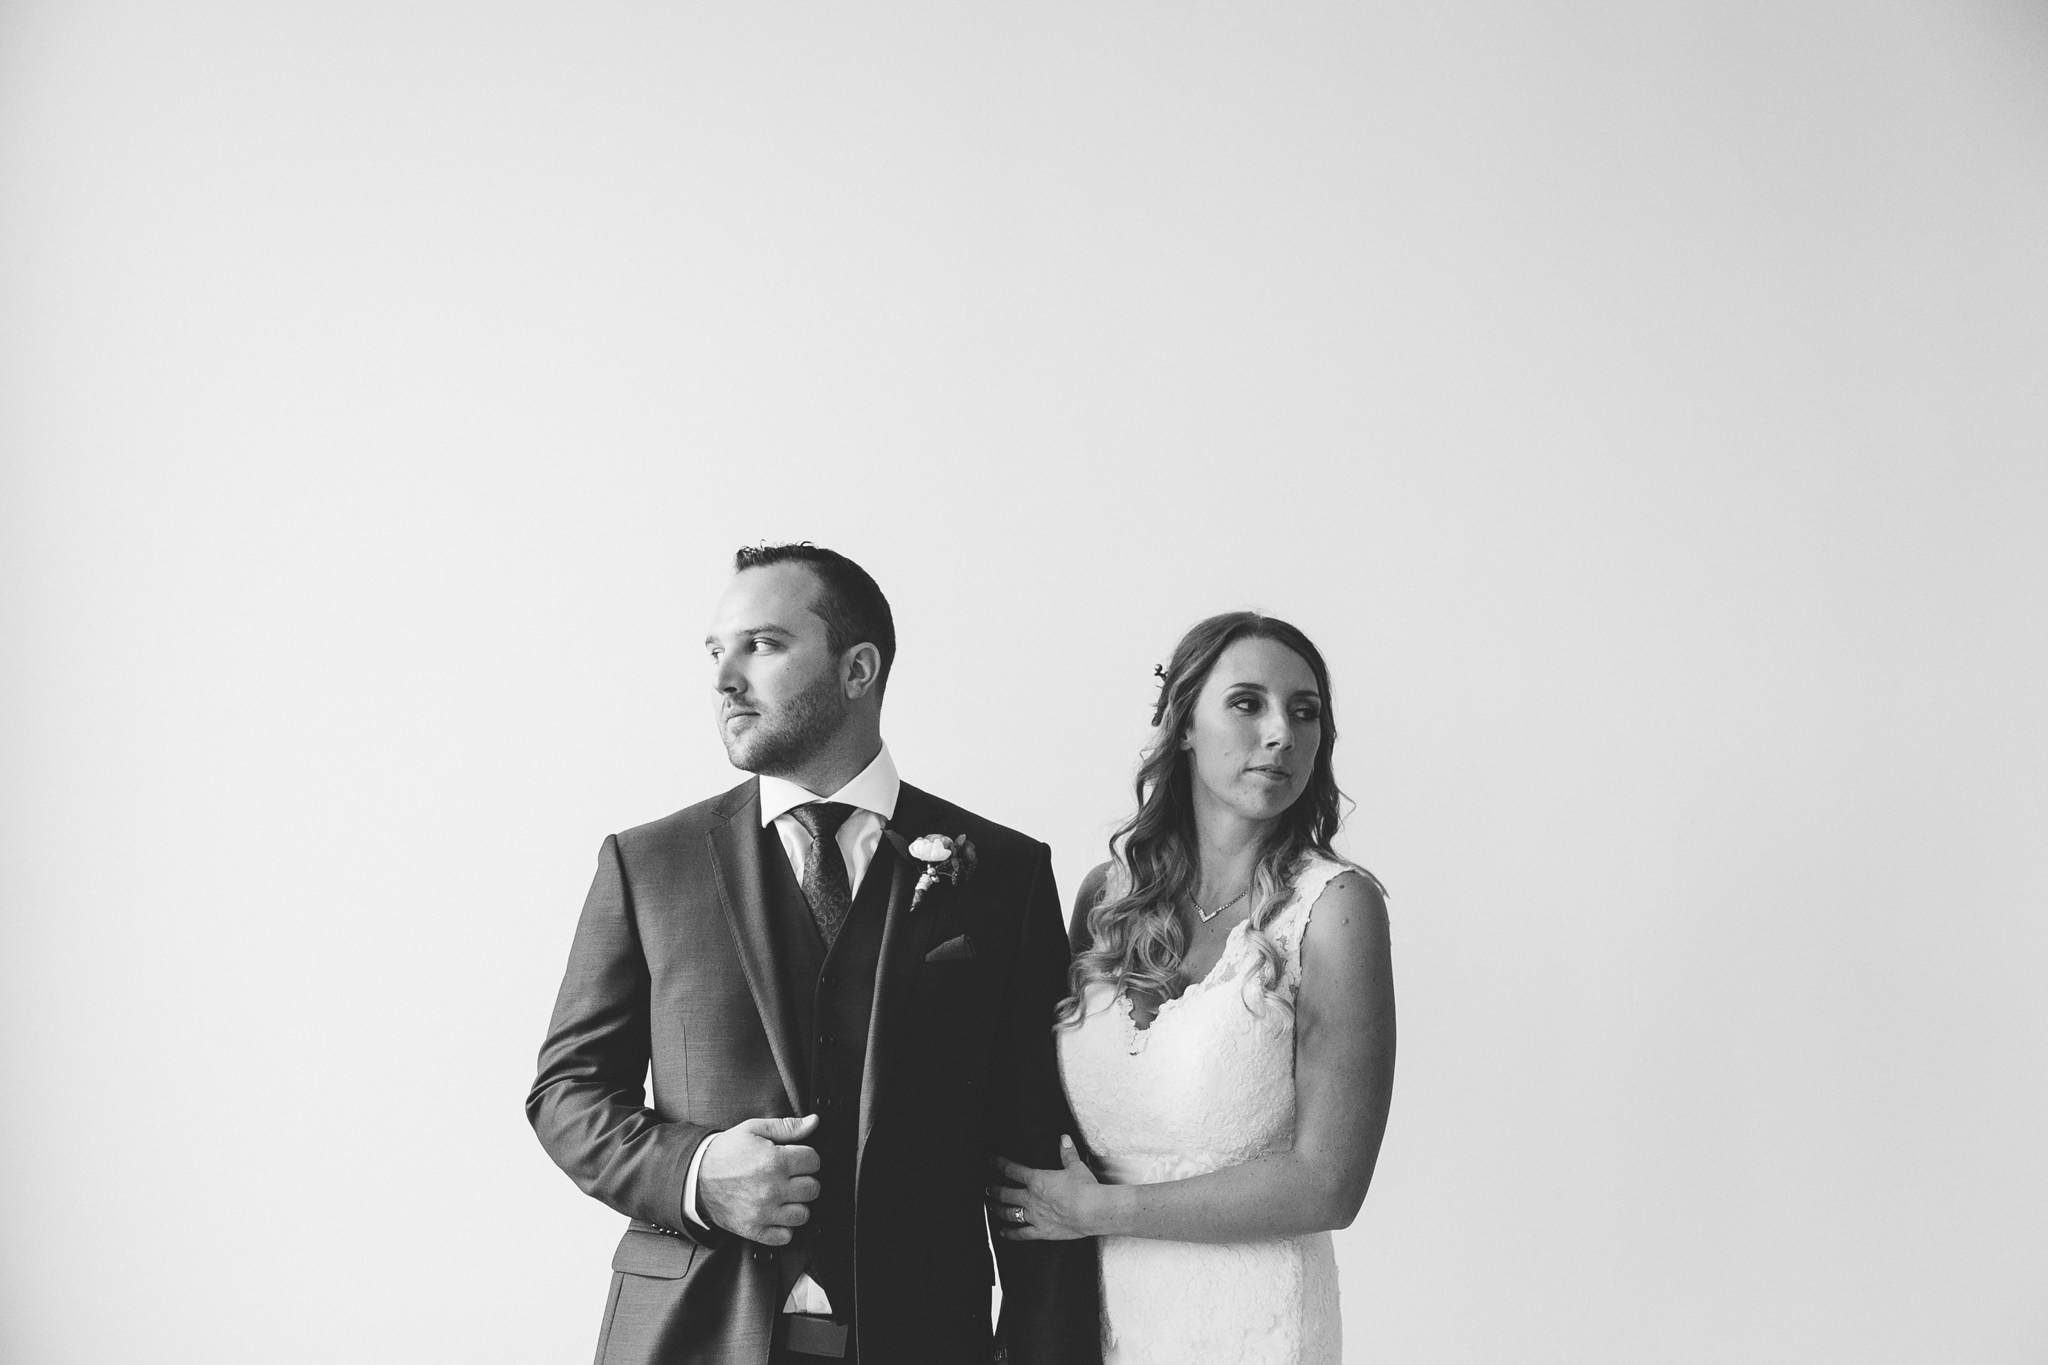 lethbridge-photographer-love-and-be-loved-photography-designed-to-dwell-wedding-katie-kelly-photo-image-picture-18.jpg